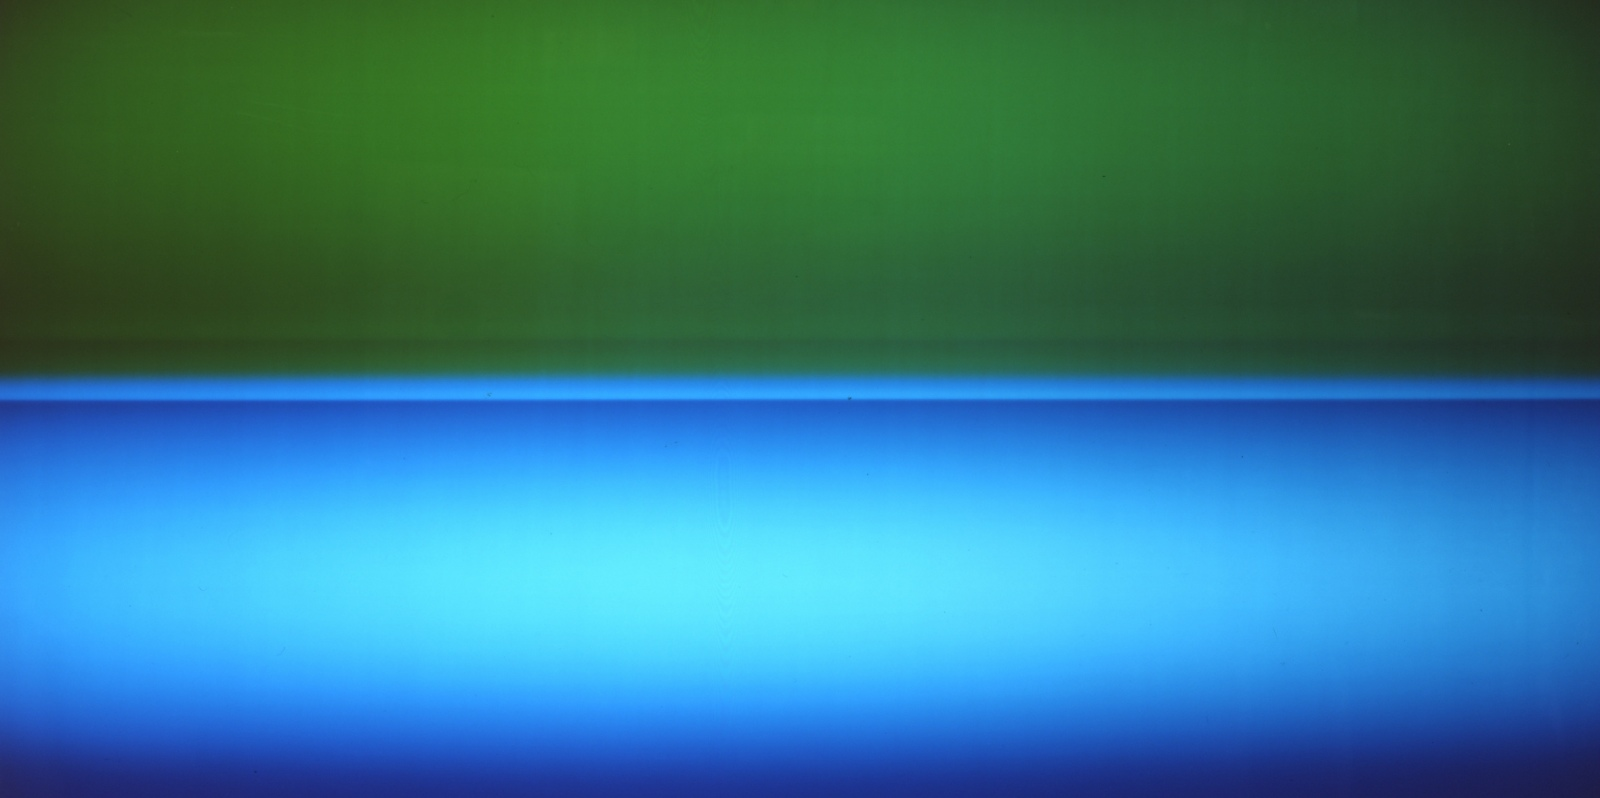 Rob and Nick Carter - RN274, Neon, Green Glass Coated W7 Pumped Blue, Clear Blue, 2003 · © Copyright 2017